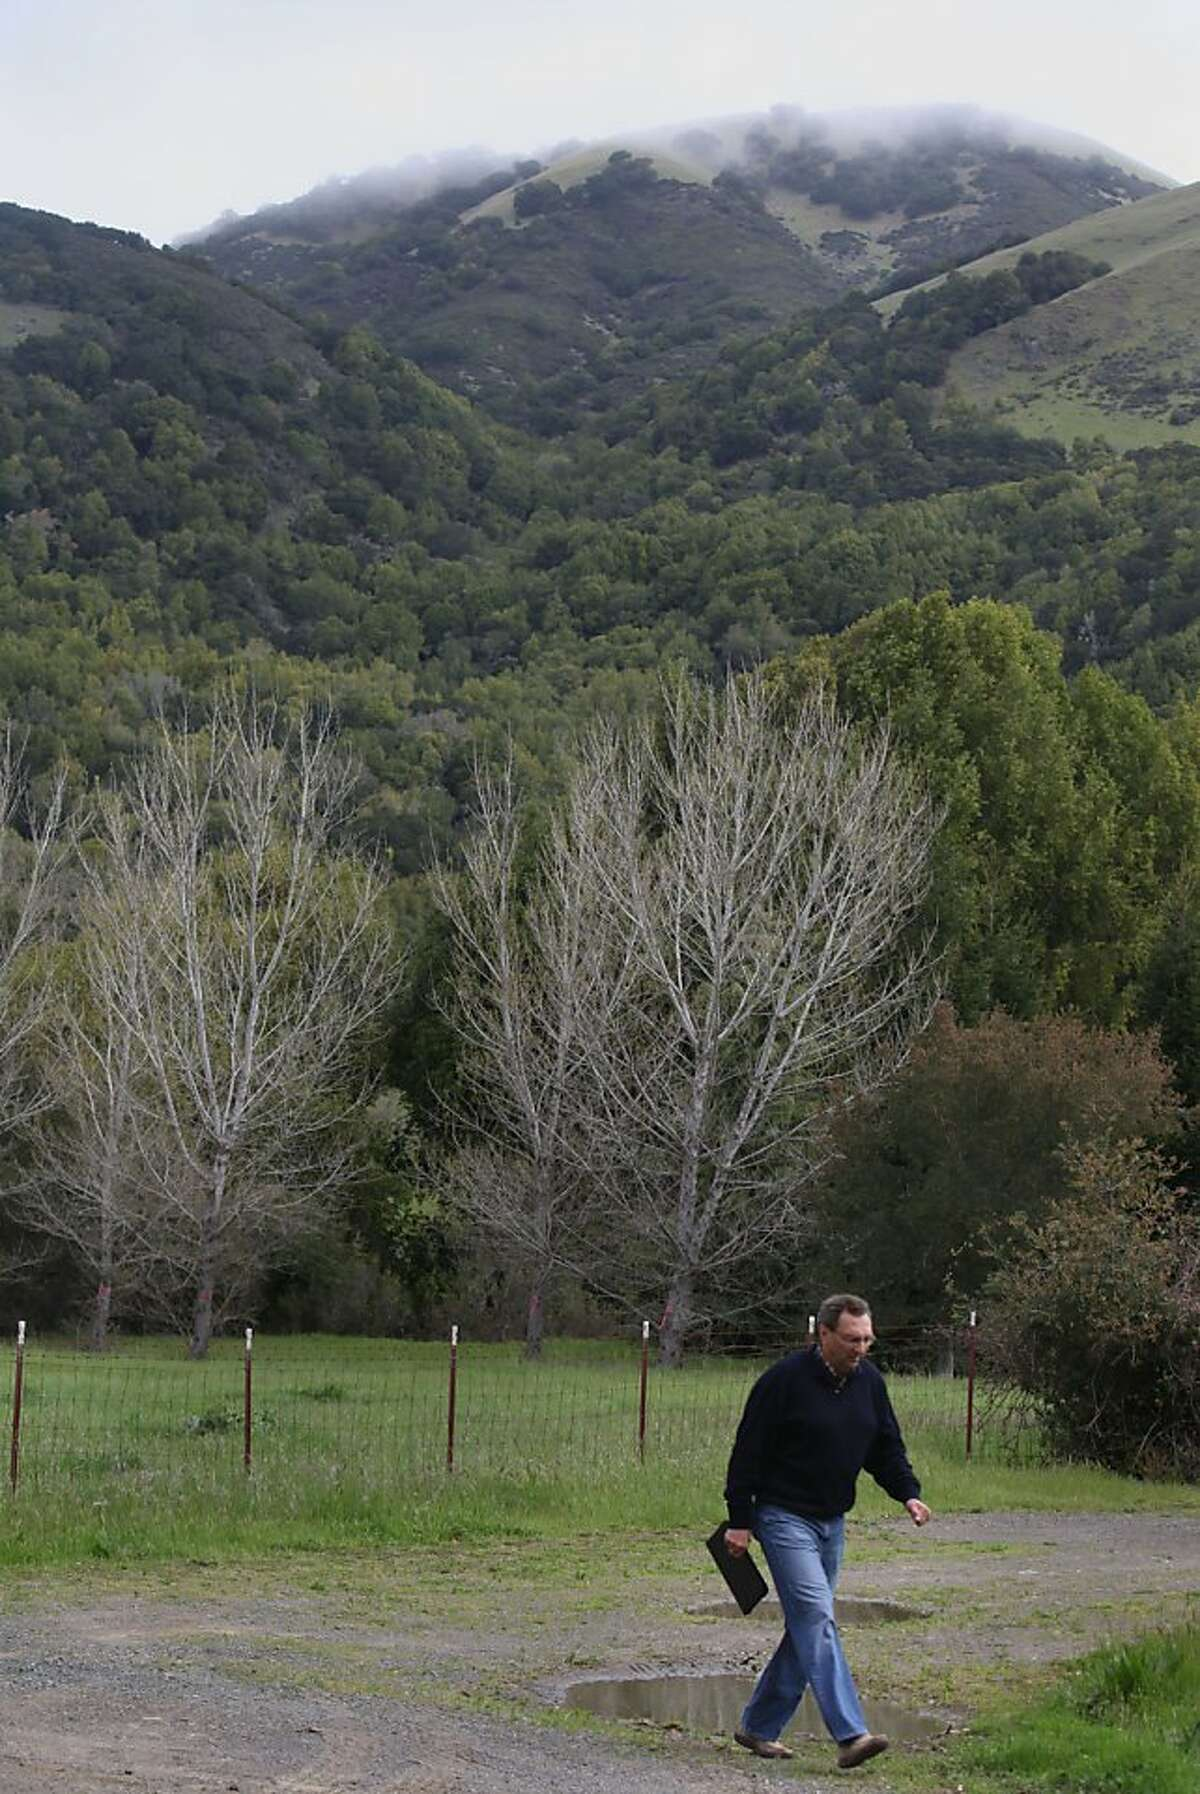 George Lucas will be building a 270,000 square foot digital media production compound on Grady Ranch in San Rafael, Calif., just past the cyprus trees seen in the background as neighbor and environmental consultant Carl Fricke walks on the planned driveway to the complex on Friday, March 30, 2012.